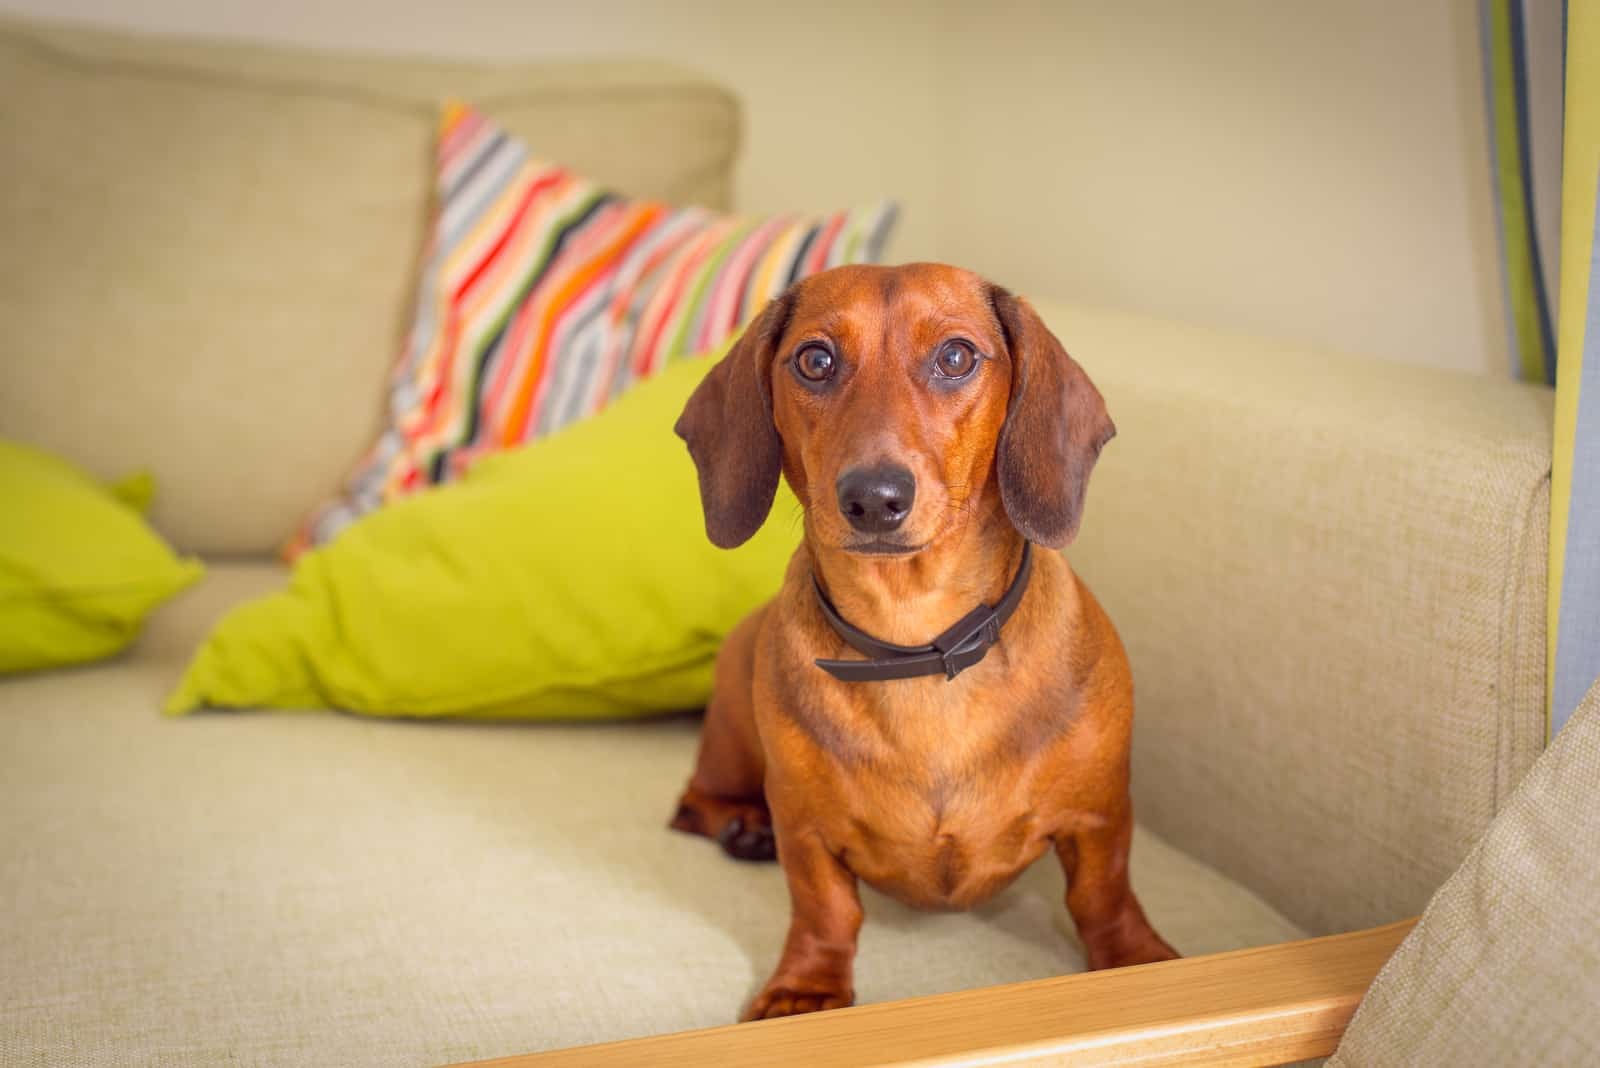 Dachshunds sits on the couch and looks ahead